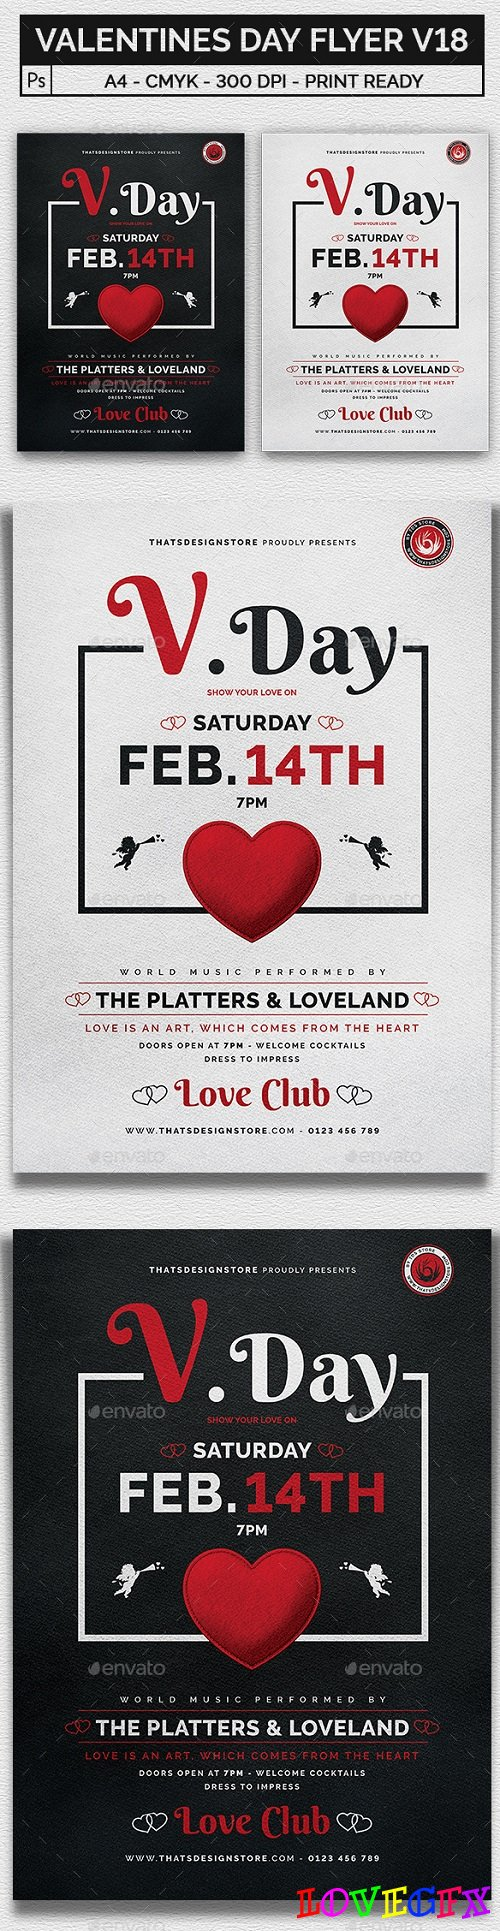 Valentines Day Flyer Template V18 21220461